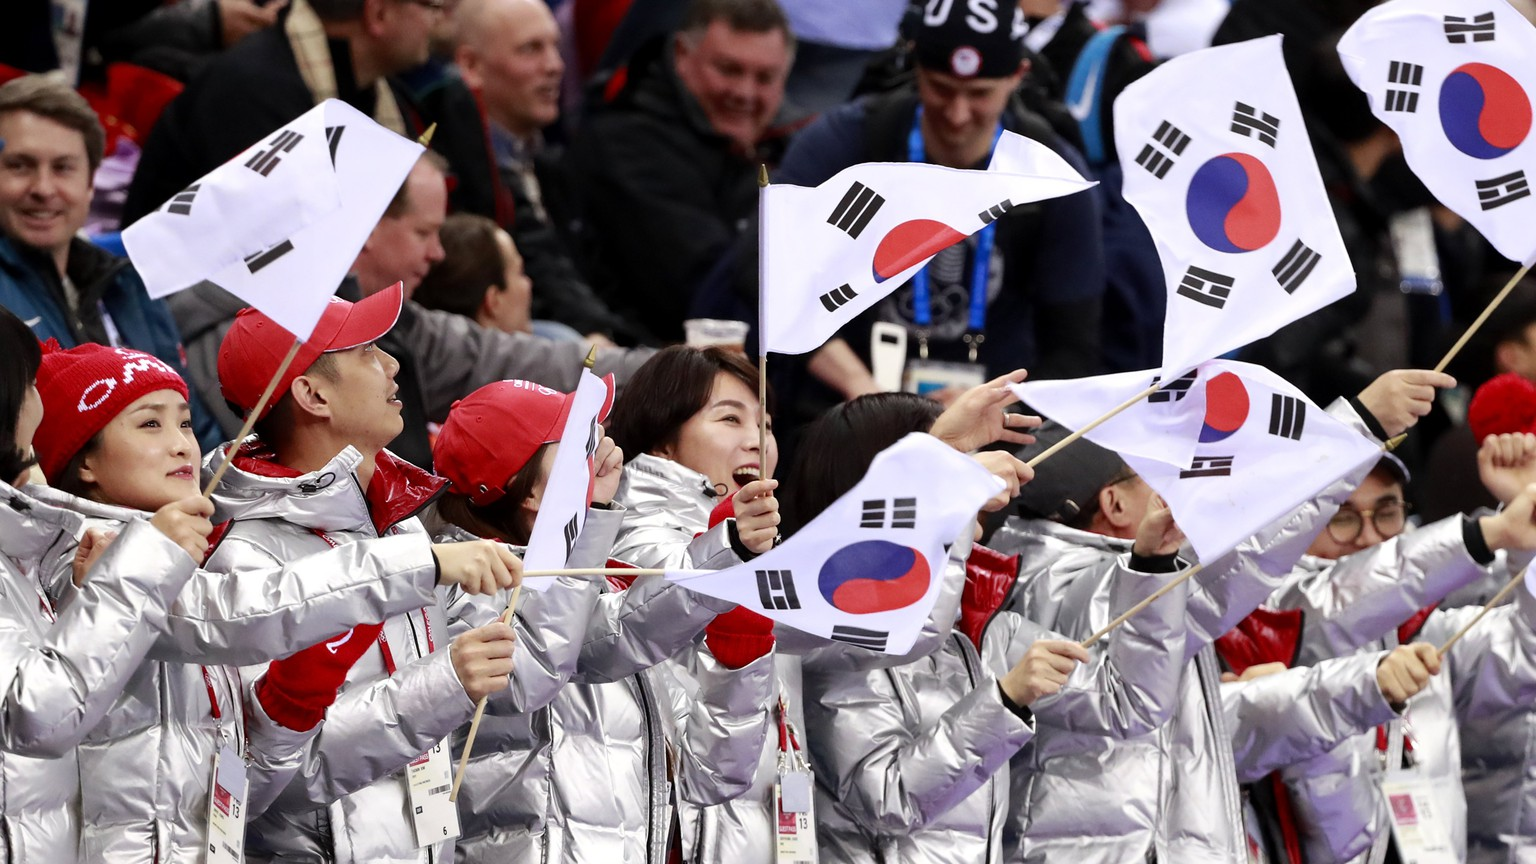 epa06520542 Supporters cheer during the Women's Short Track Speed Skating 500 m quarter final at the Gangneung Ice Arena during the PyeongChang 2018 Olympic Games, South Korea, 13 February 2018.  EPA/HOW HWEE YOUNG